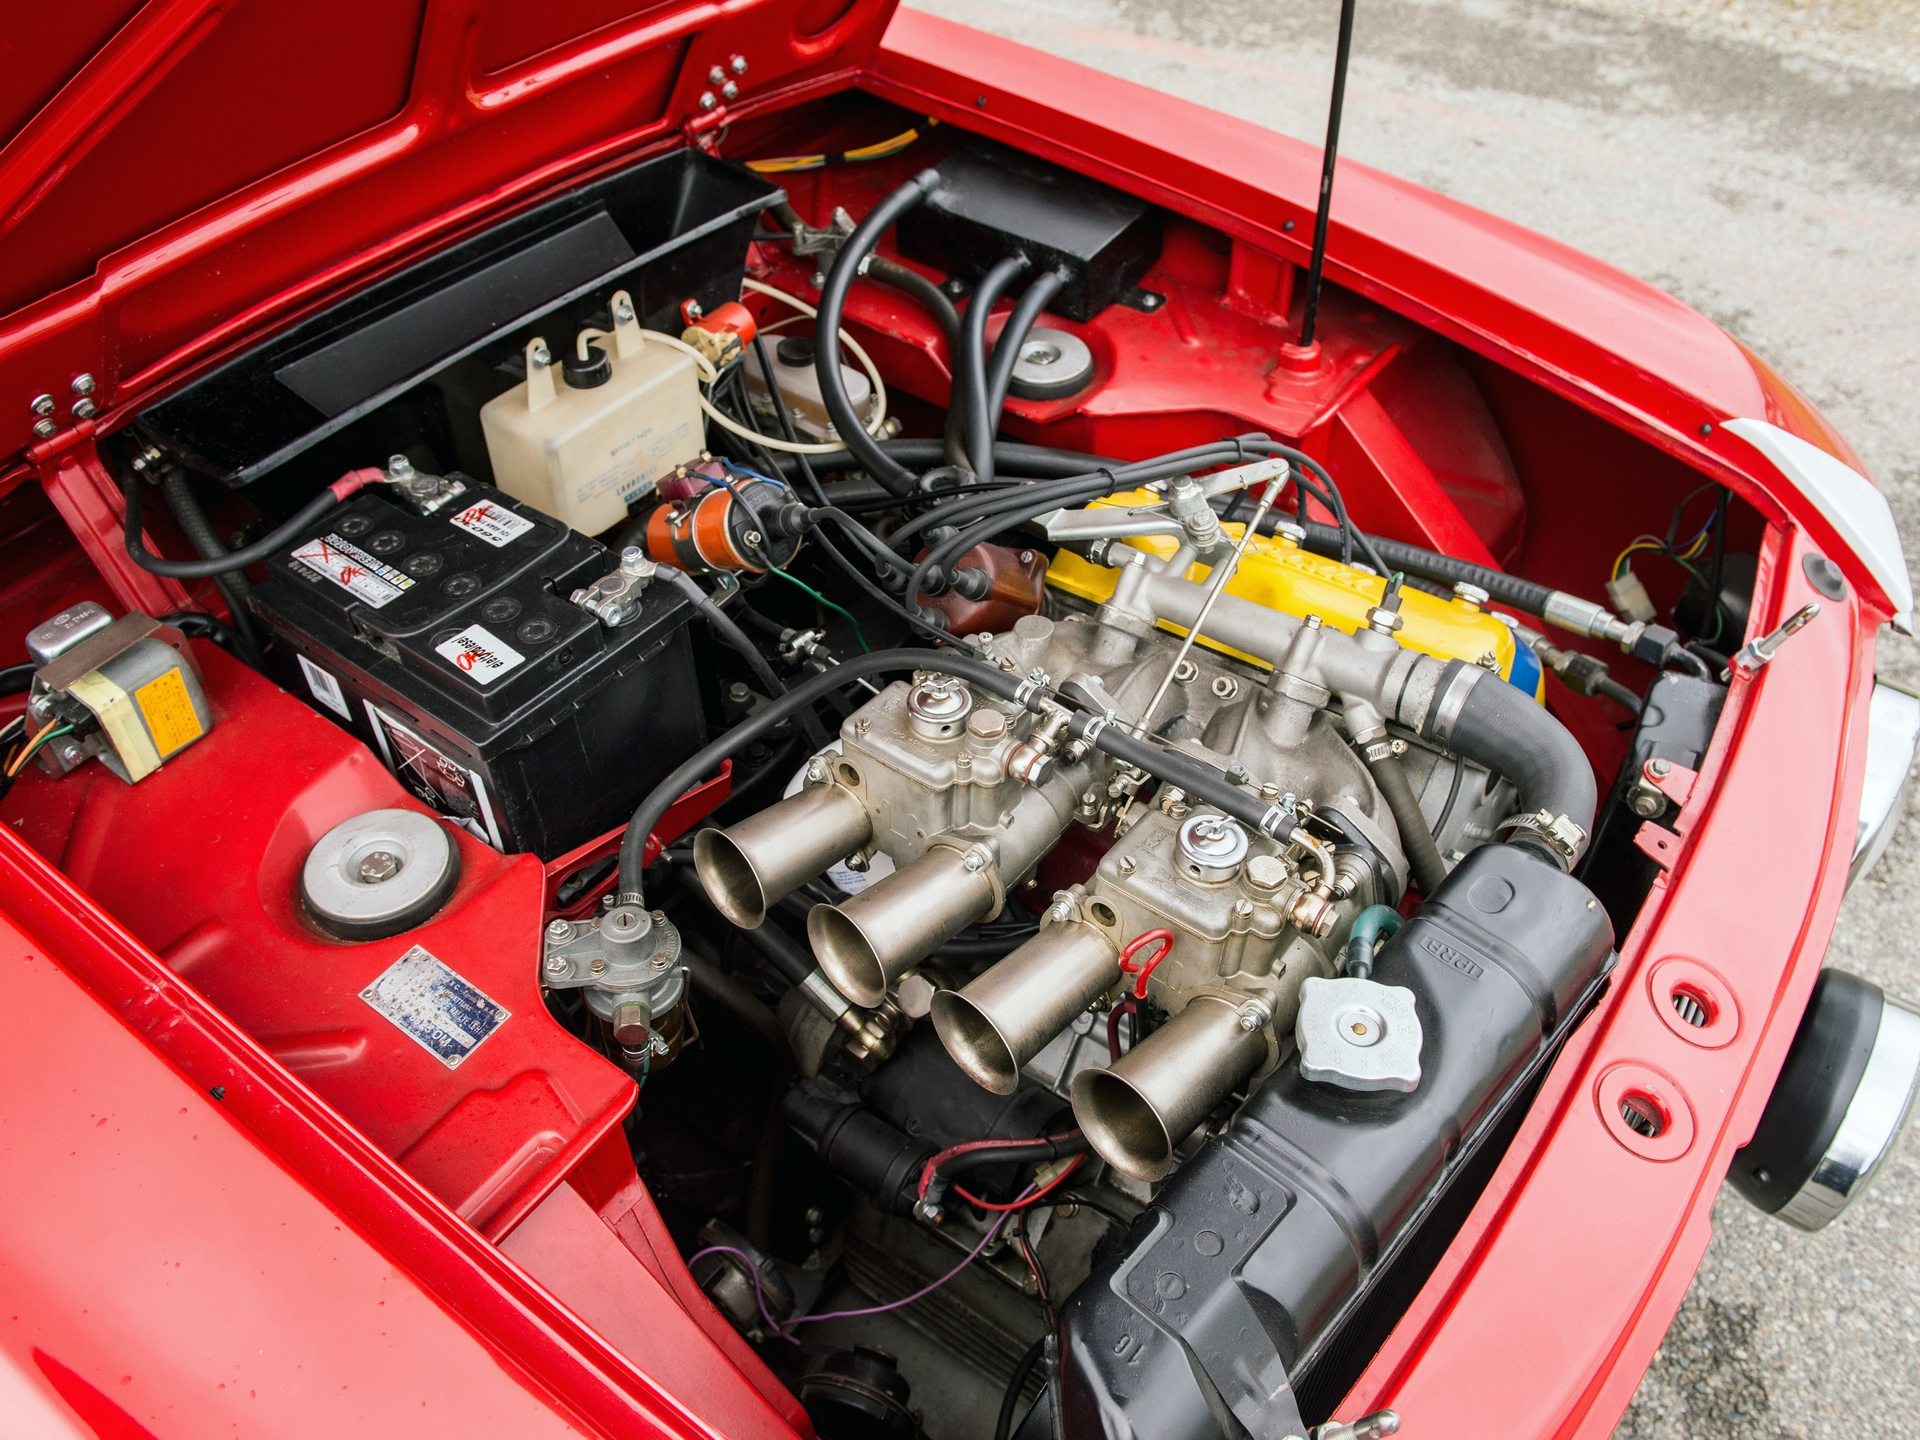 Comments 1969 Lancia Fulvia 16 HF Fanalone sn 818540002124 Engine no 8185405755 Red with Black Interior Famous for their incredible craftsmanship